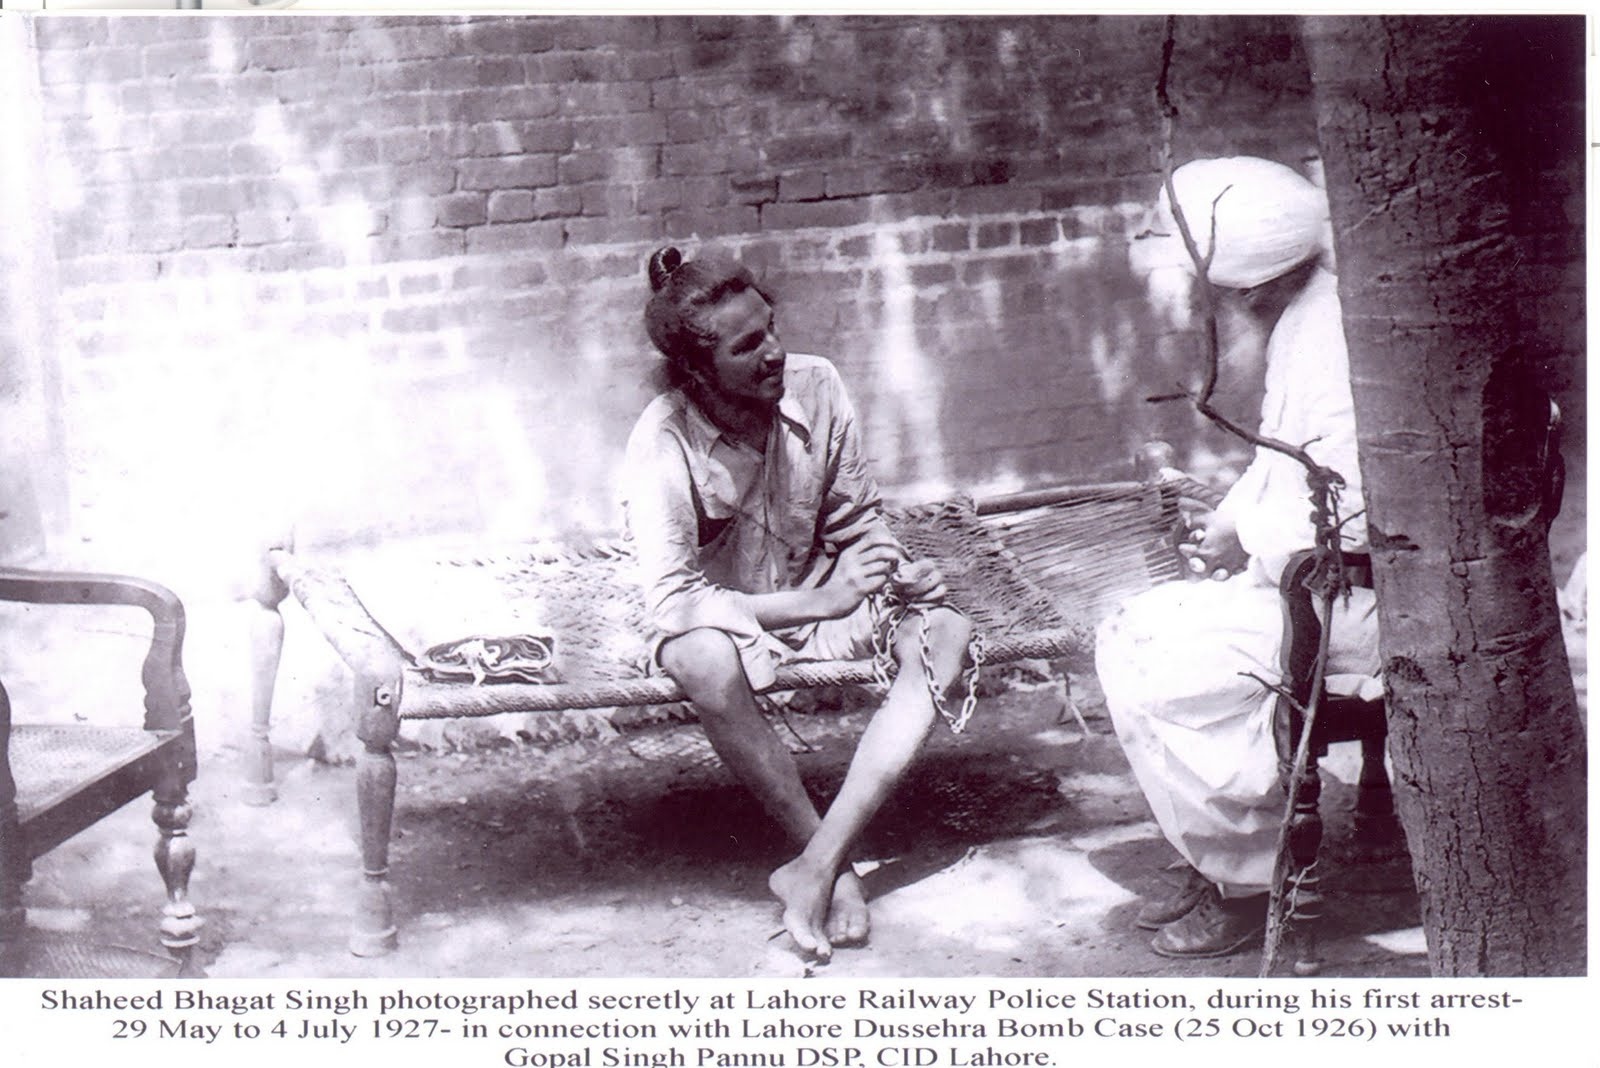 Shaheed+Bhagat+Singh+photographed+secret